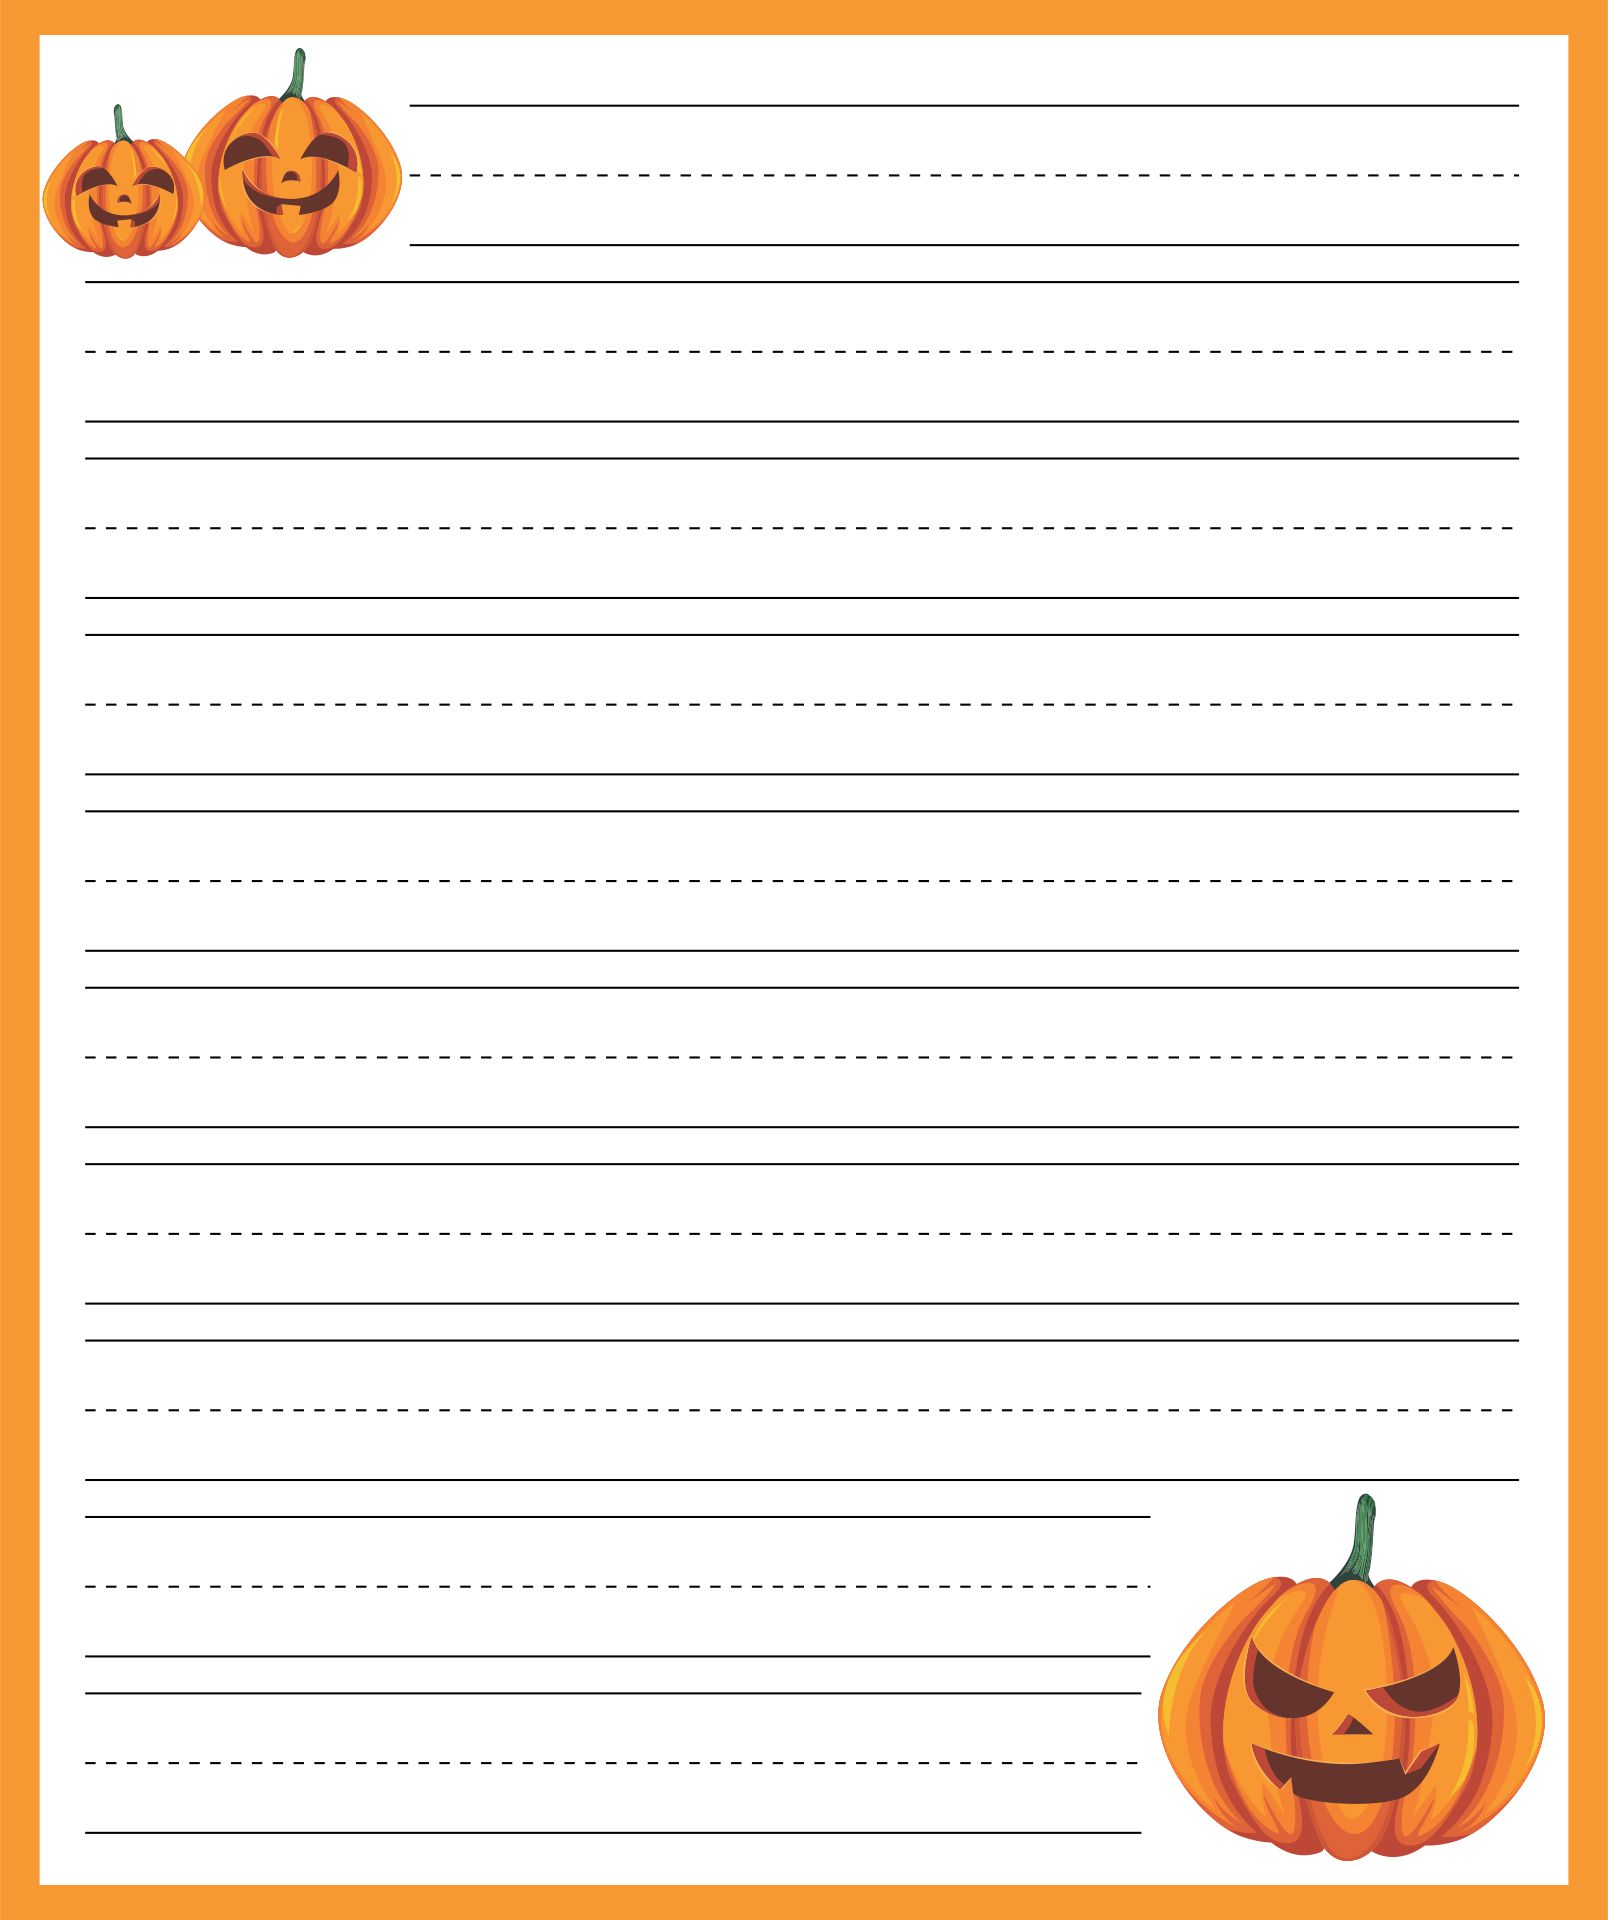 6 Images of Free Printable Halloween Lined Writing Paper